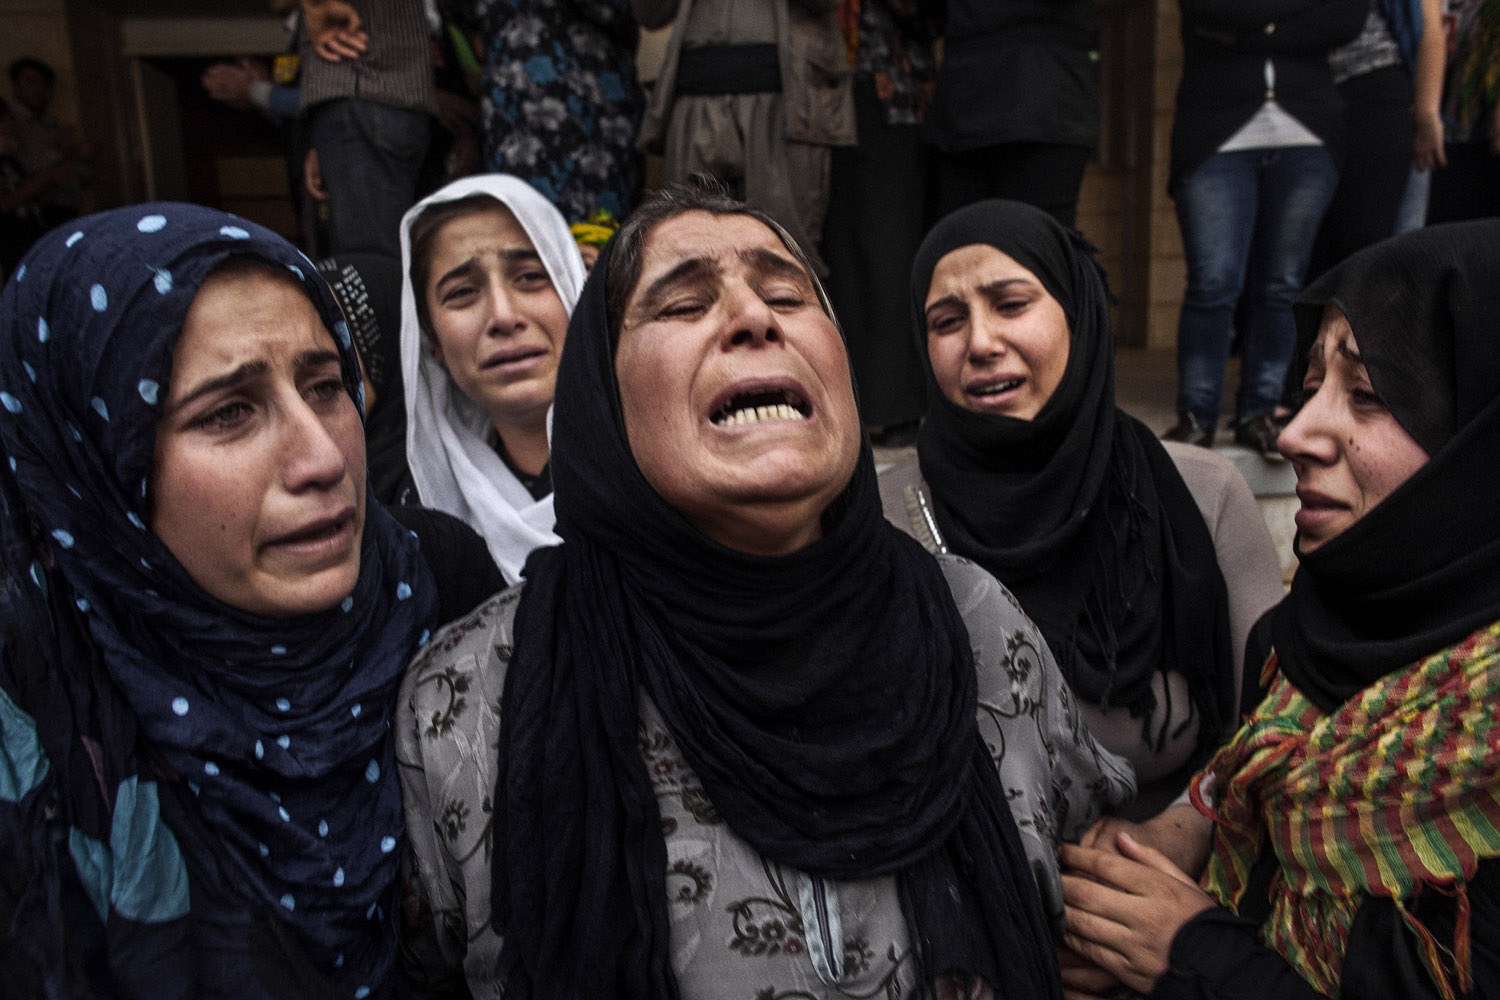 The mother of a YPG soldier who was killed in the fighting against the Nusra Front mourns his death in front of the morgue in al-Malikiyah (Derik).